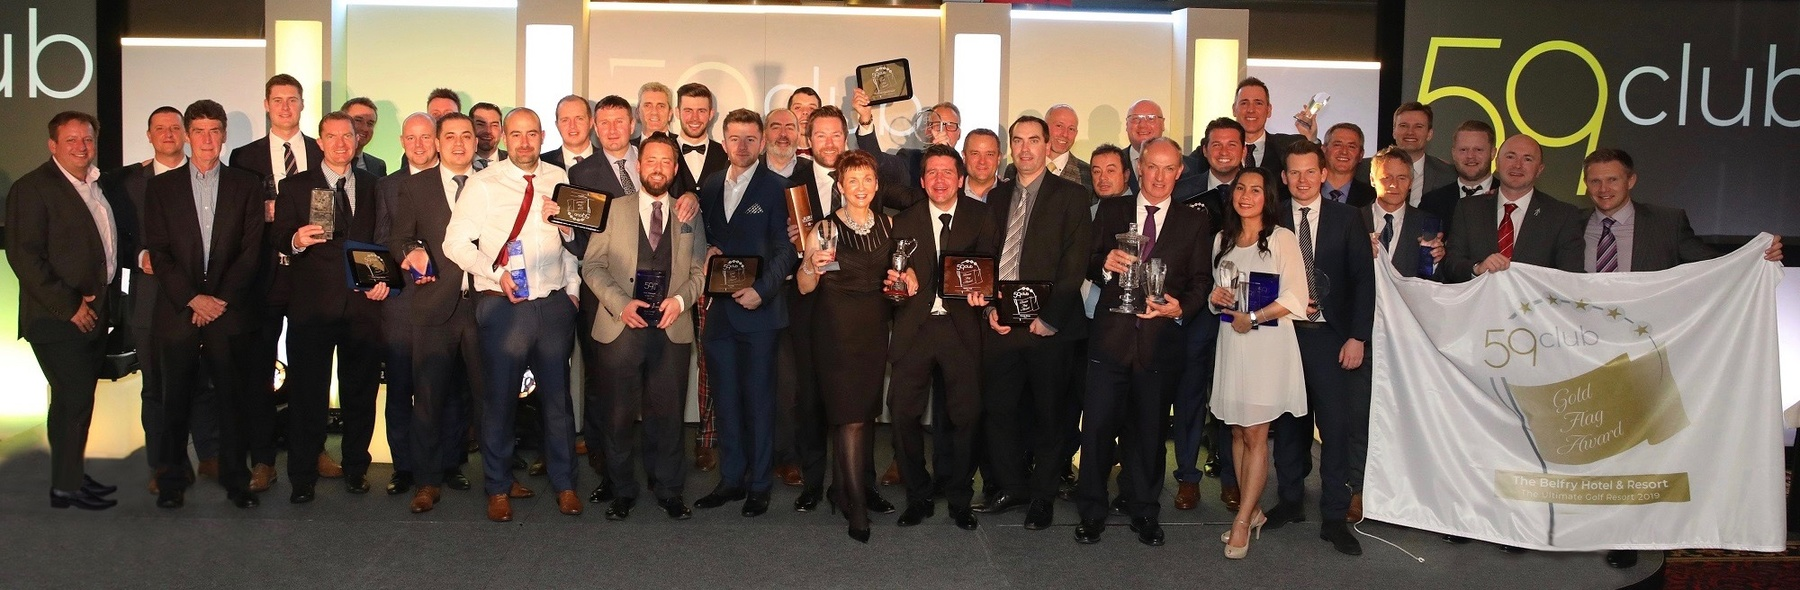 2018 59club Service Excellence Award Winners (1)